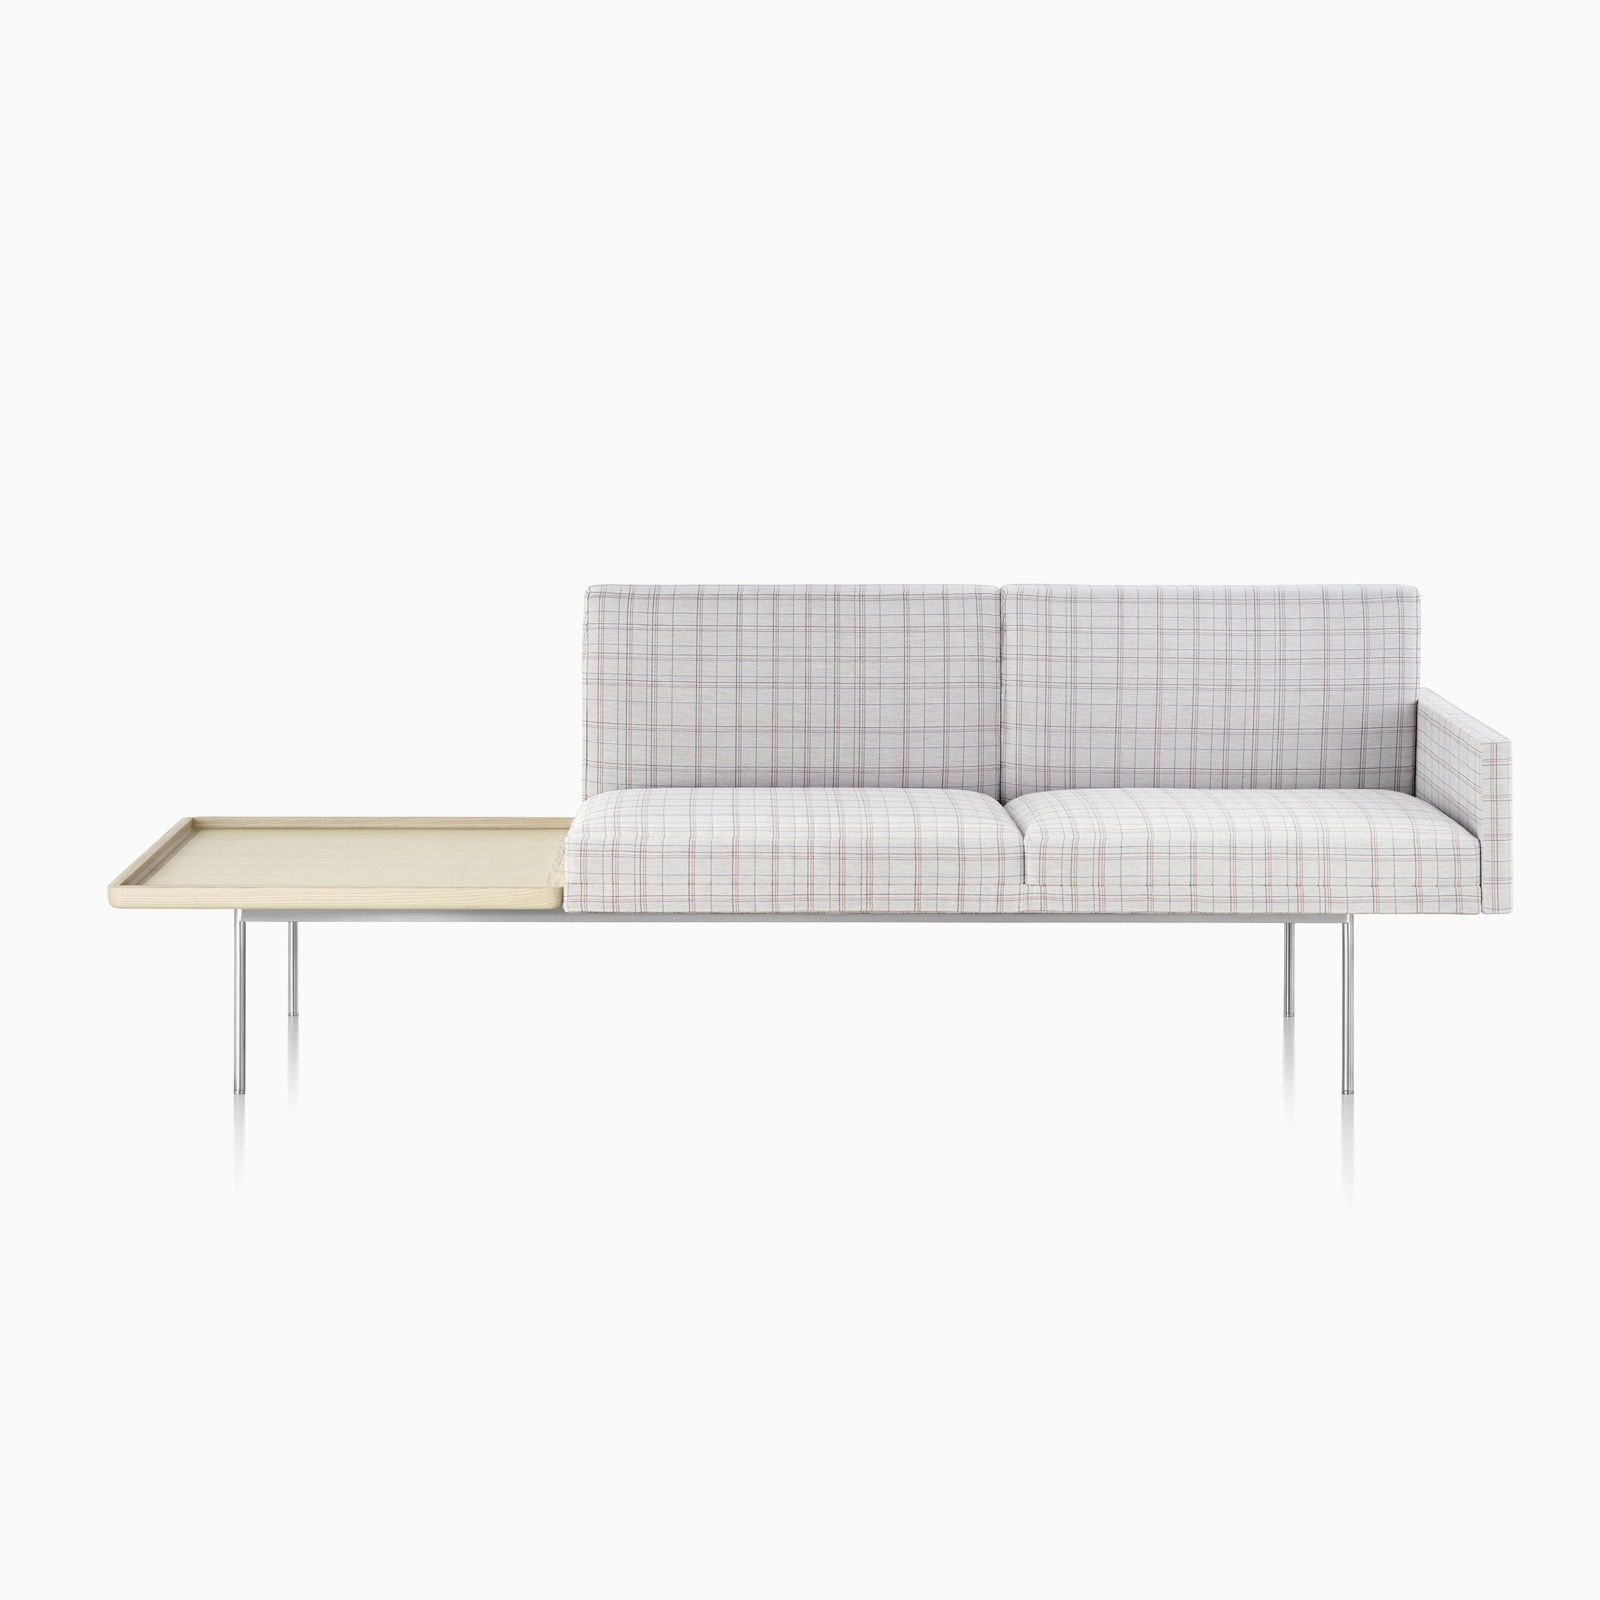 Tuxedo Lounge Seating in Pick Stitch Plaid Cotton.